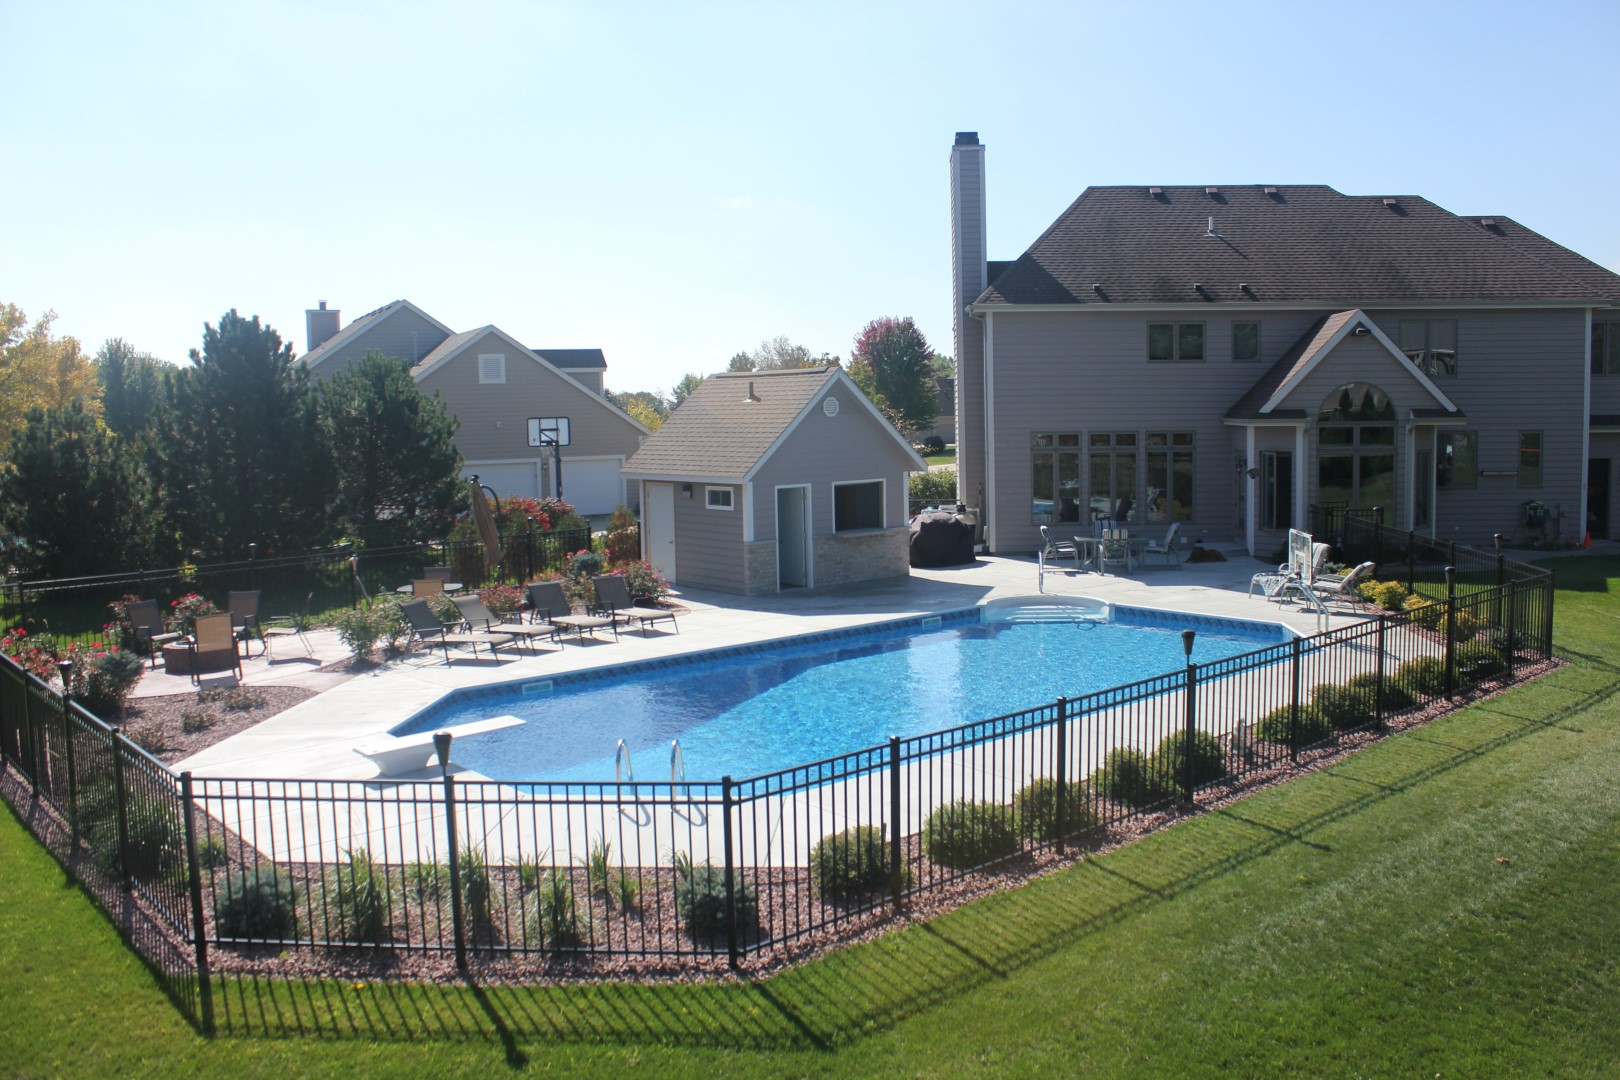 Completed Inground Pools by Penguin Pools -Your Complete Pool Builder